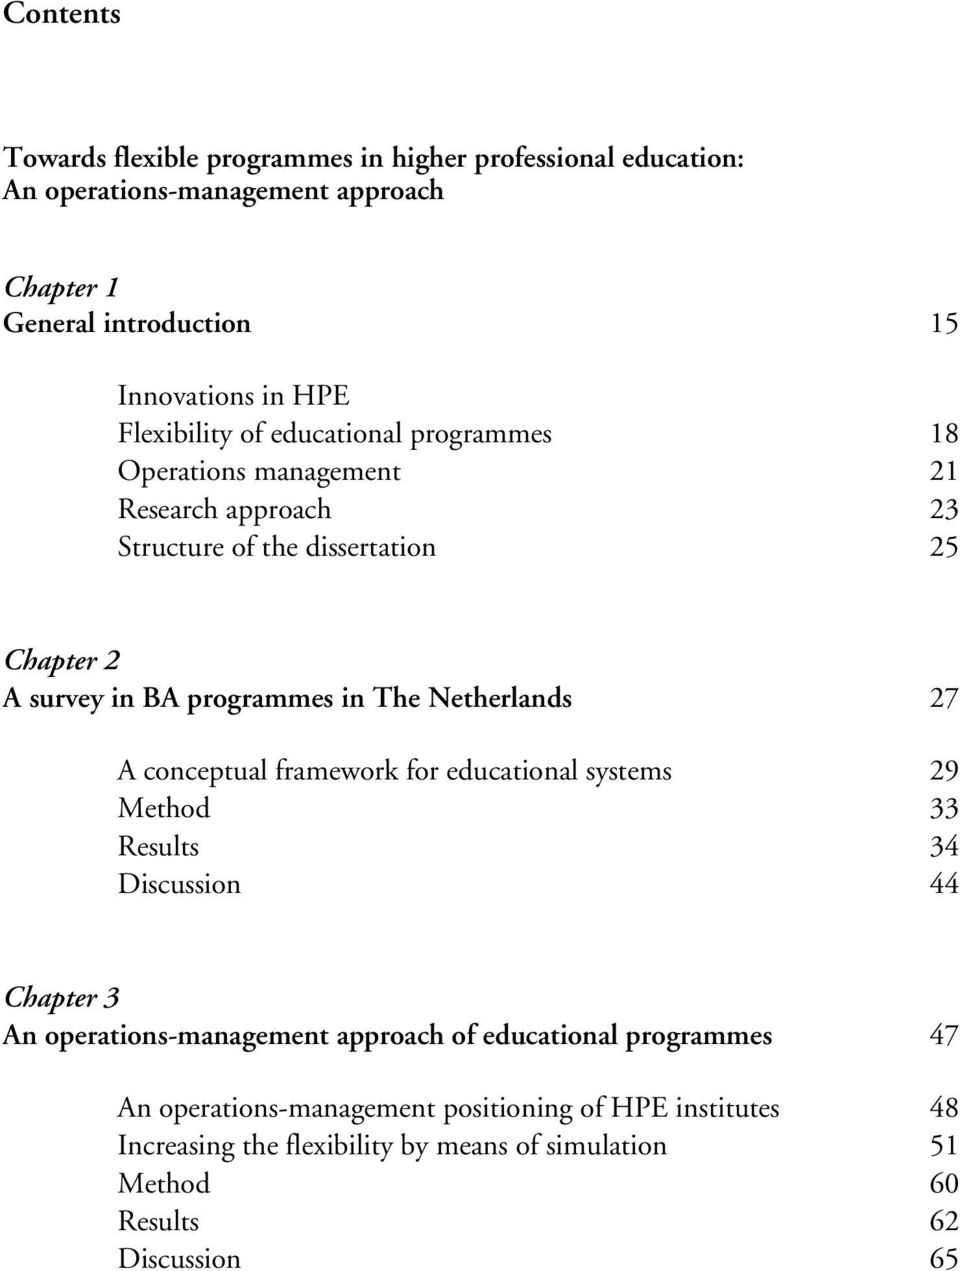 in The Netherlands A conceptual framework for educational systems Method Results Discussion 27 29 33 34 44 Chapter 3 An operations-management approach of